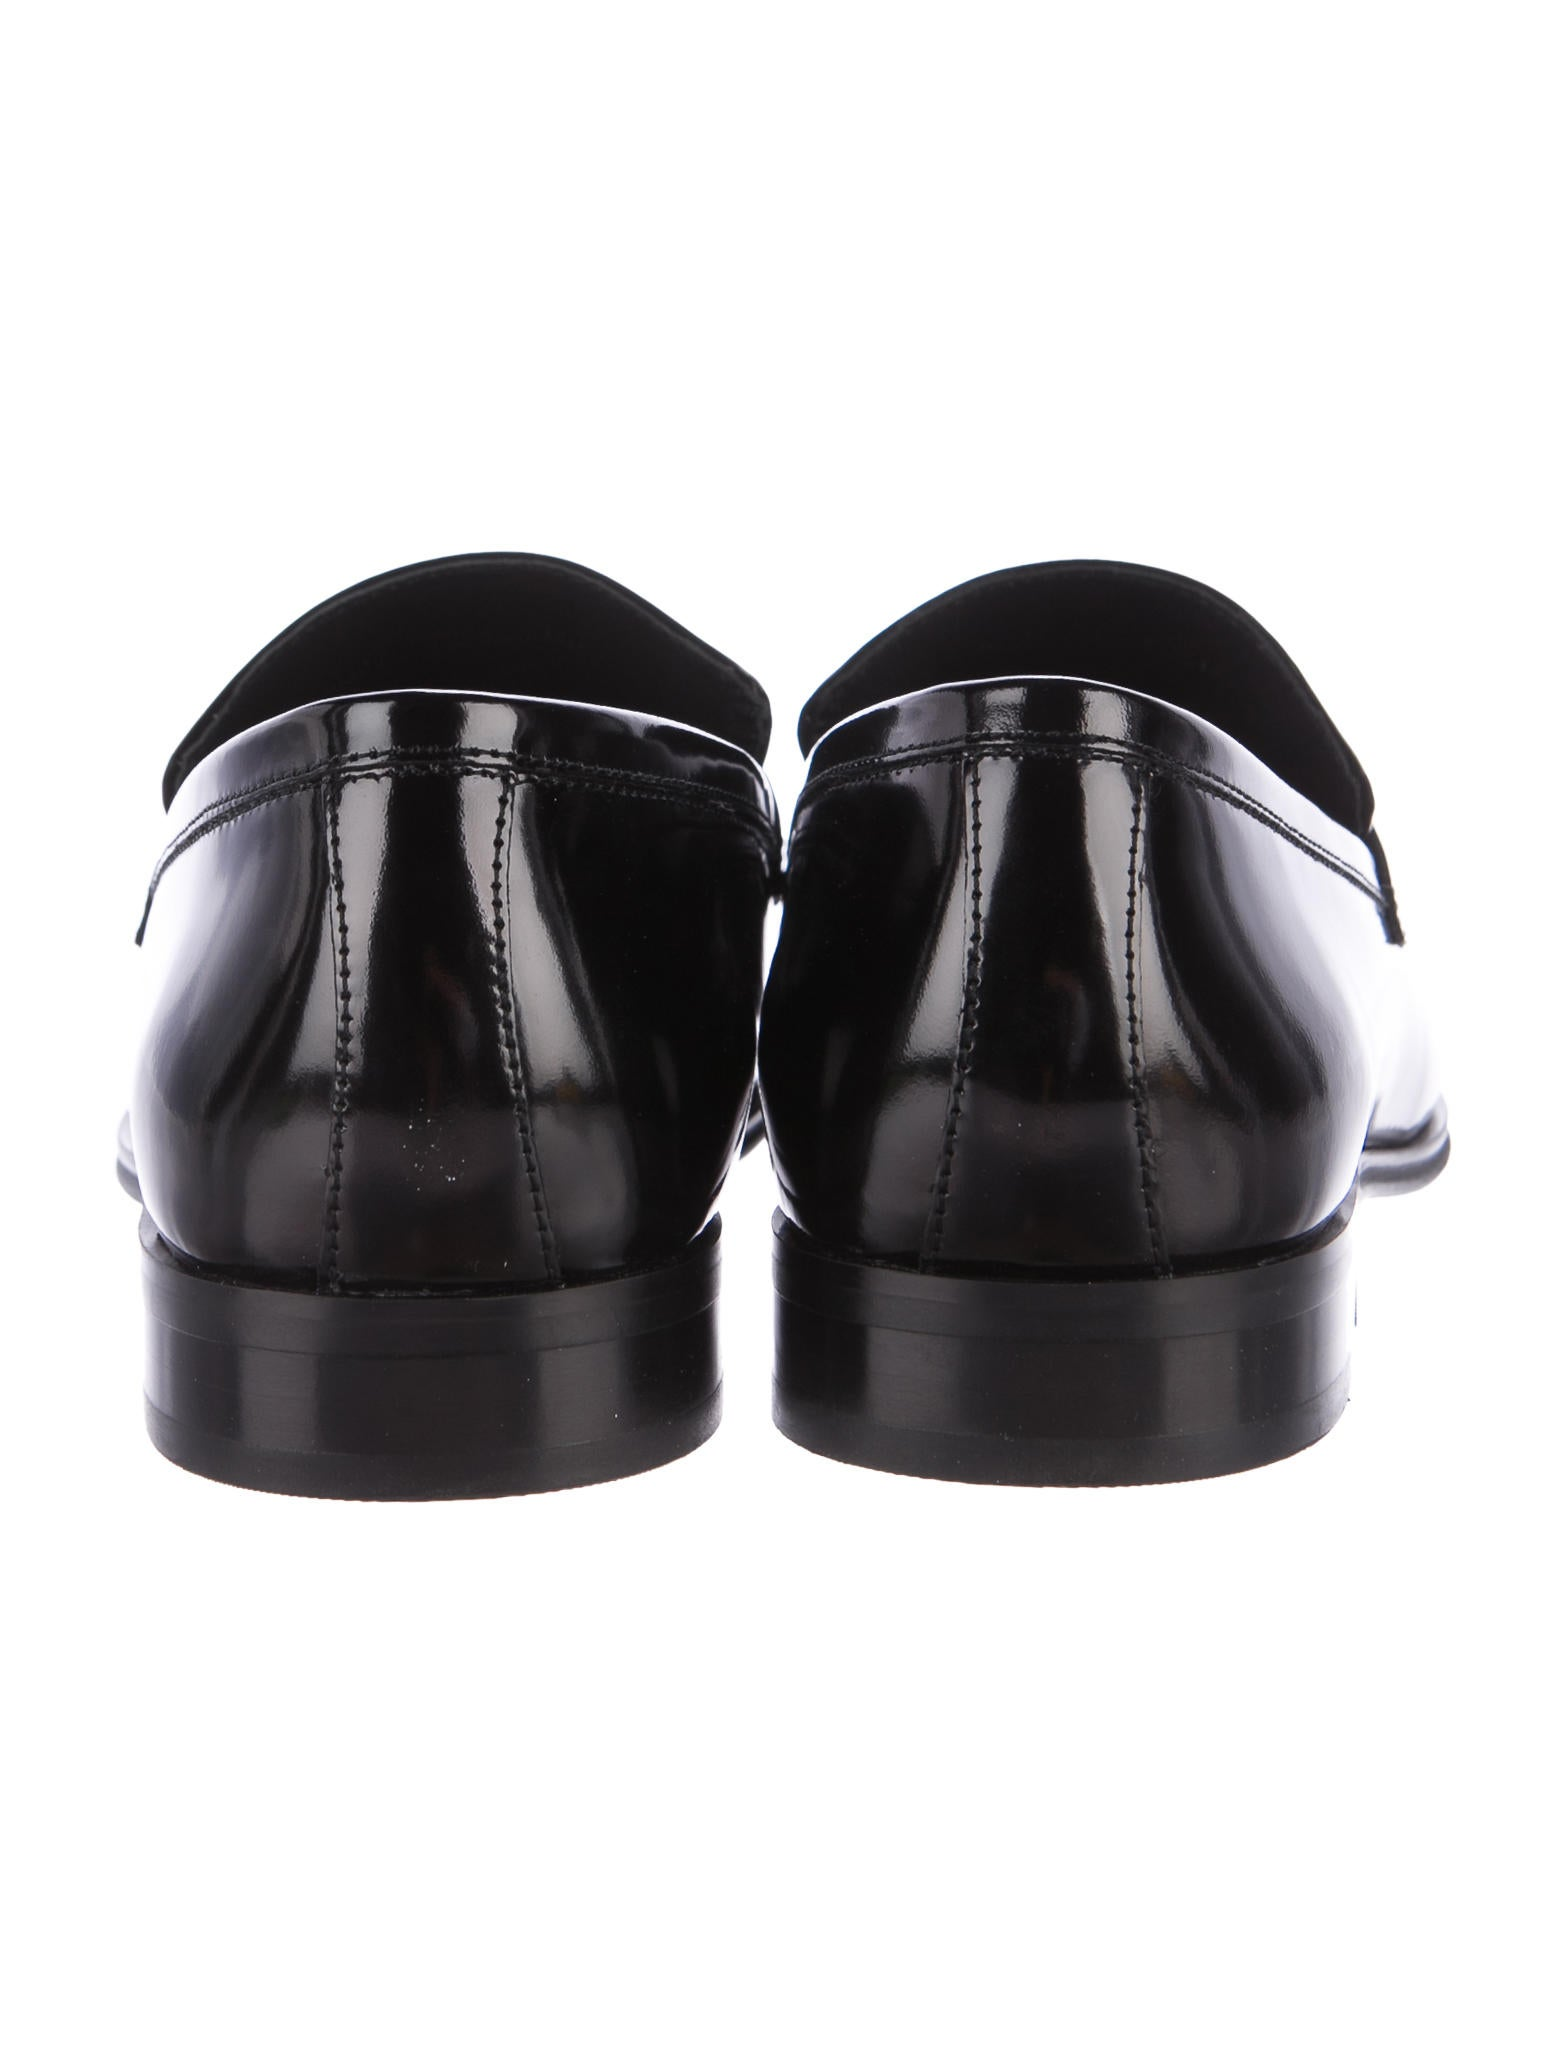 Versace Collection Leather Penny Loafers Shoes  : WV9220004enlarged from www.therealreal.com size 1555 x 2052 jpeg 113kB